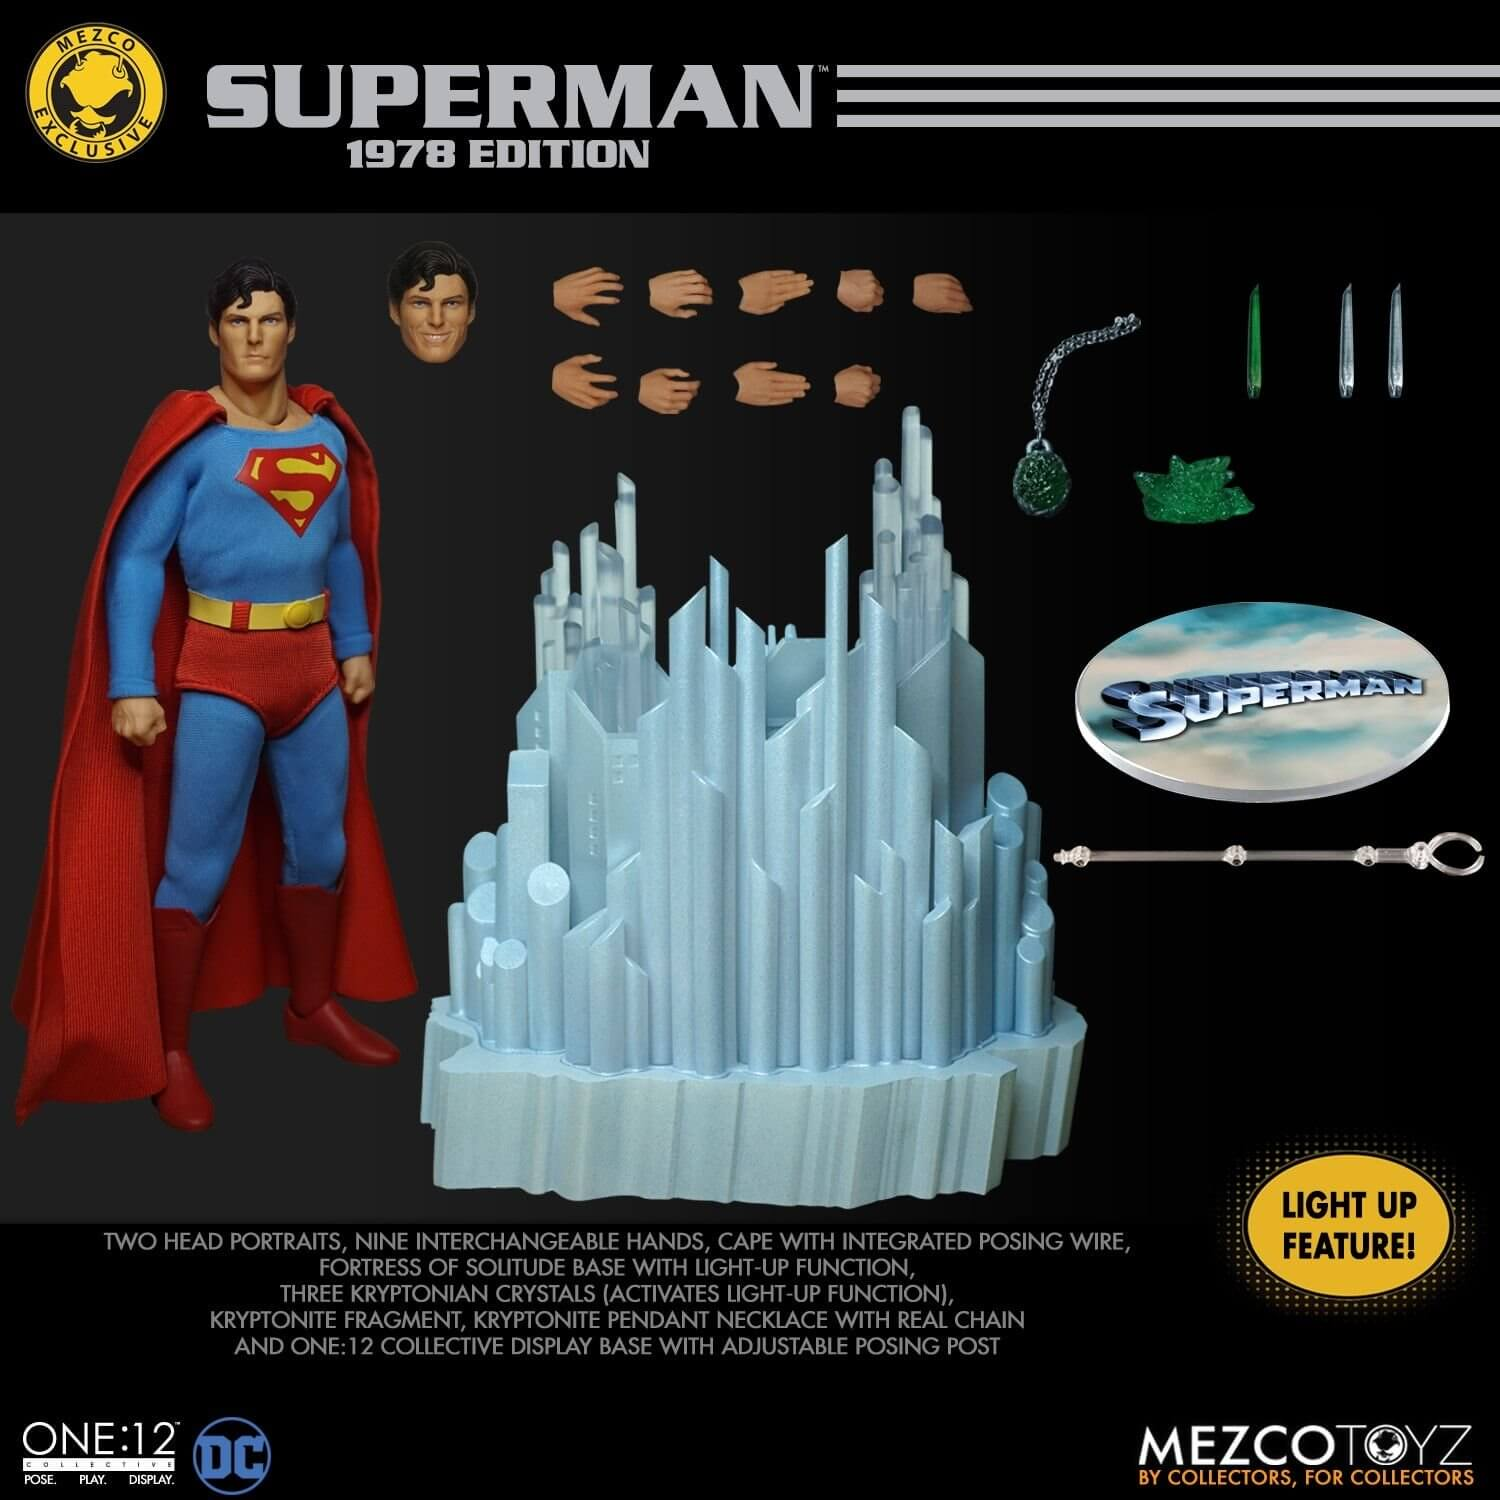 Superman Mezcotoys